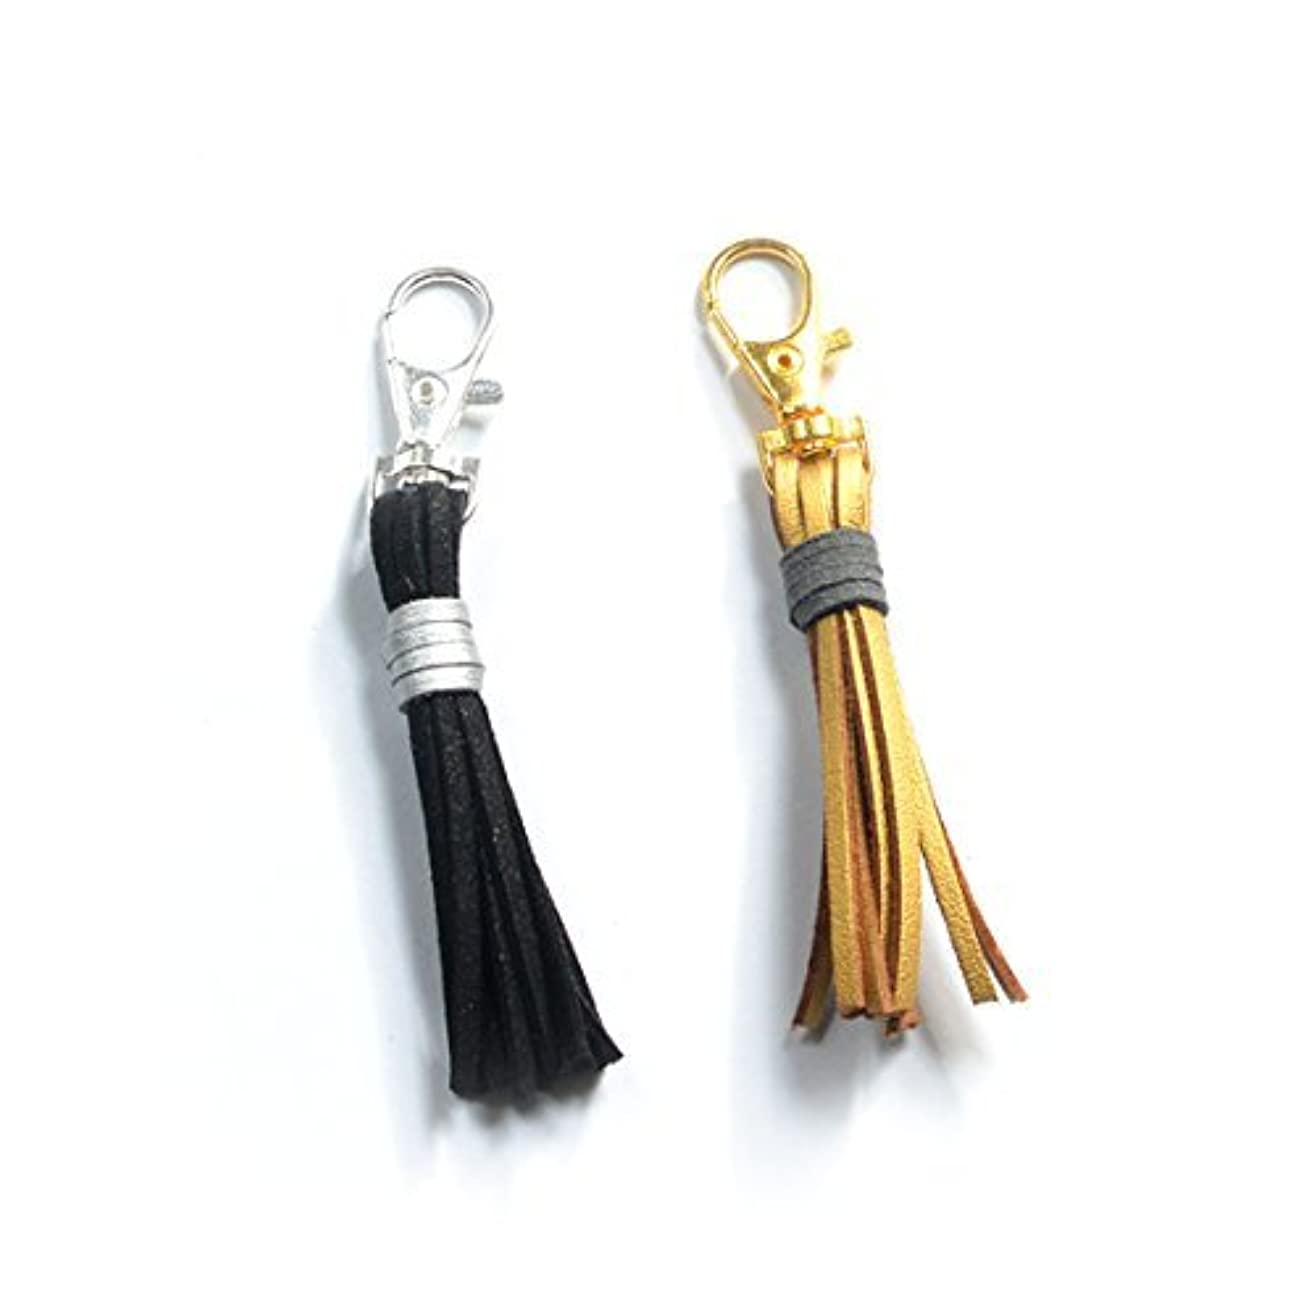 Essential Oil Diffuser Bag Charm (Qty 2) - Keychain Diffuser, Car Diffuser, Aromatherapy, Essential Oil Accessory, Faux Suede Tassel